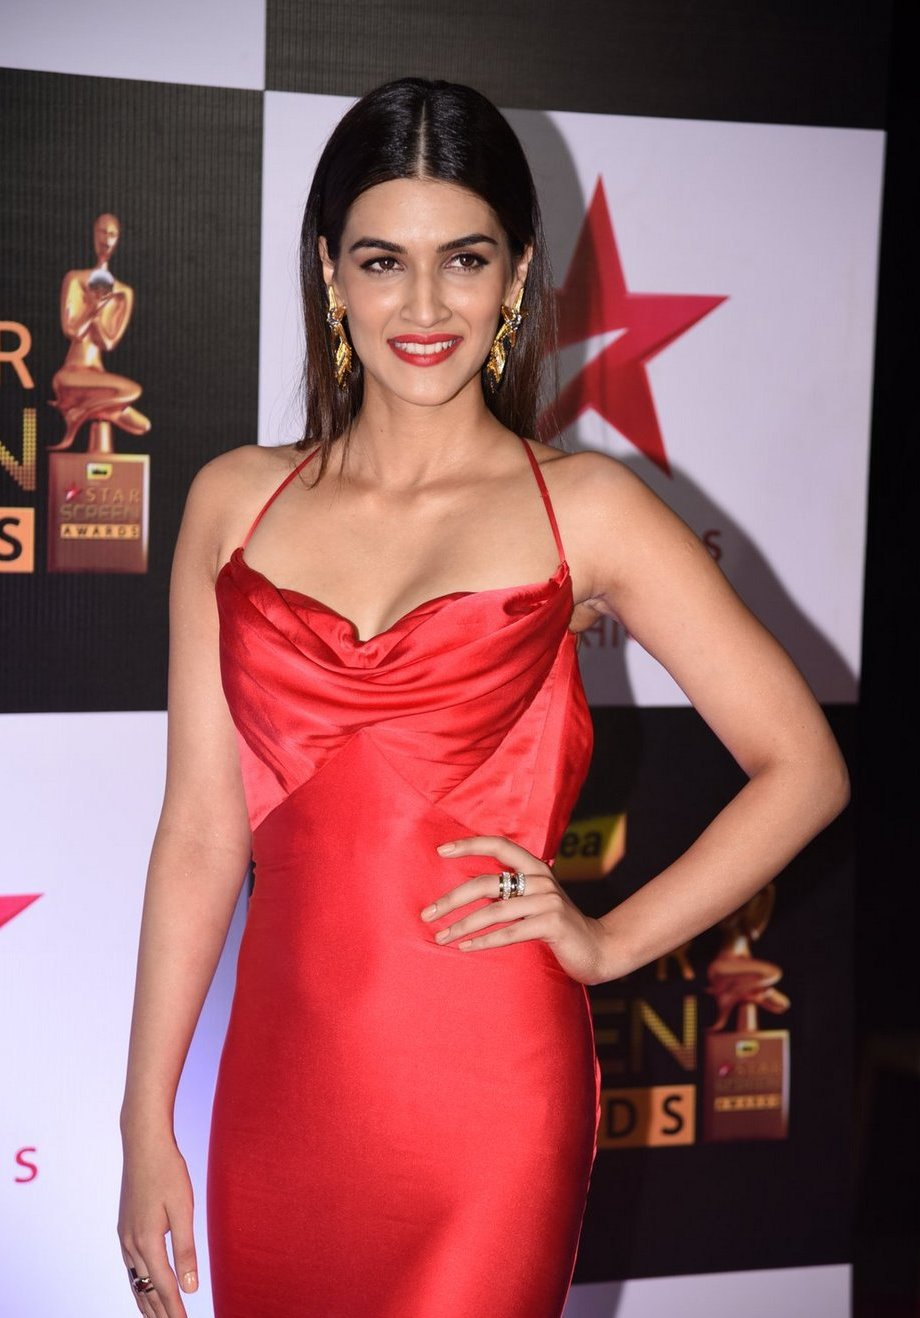 Model Kriti Sanon Hot New Photos In Red Dress